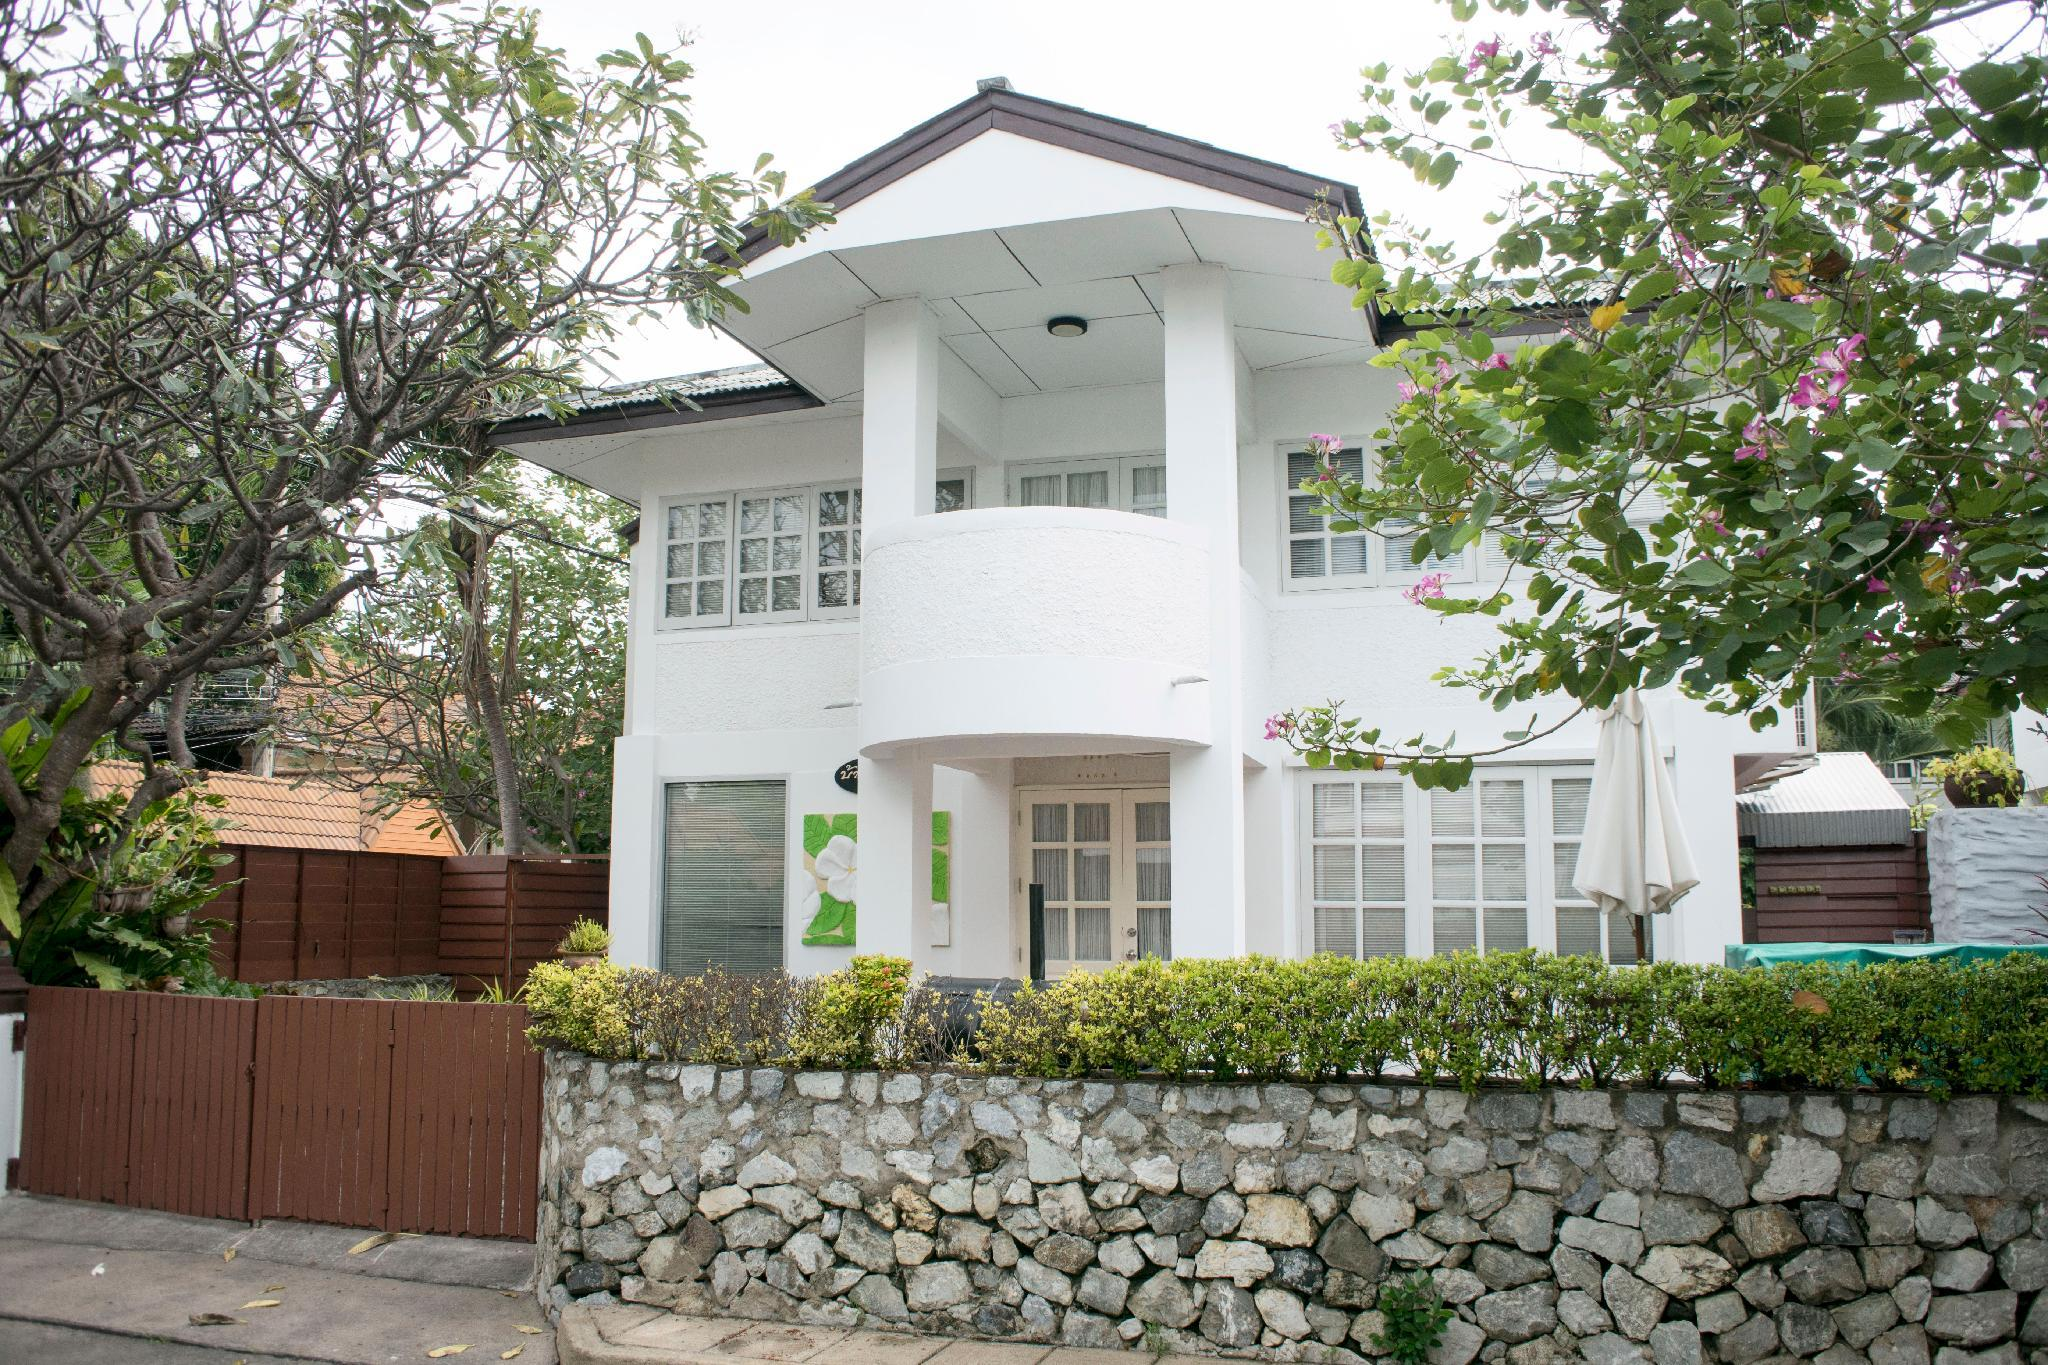 Grand villa, 4 soverom (4-Bedroom Grand Villa)